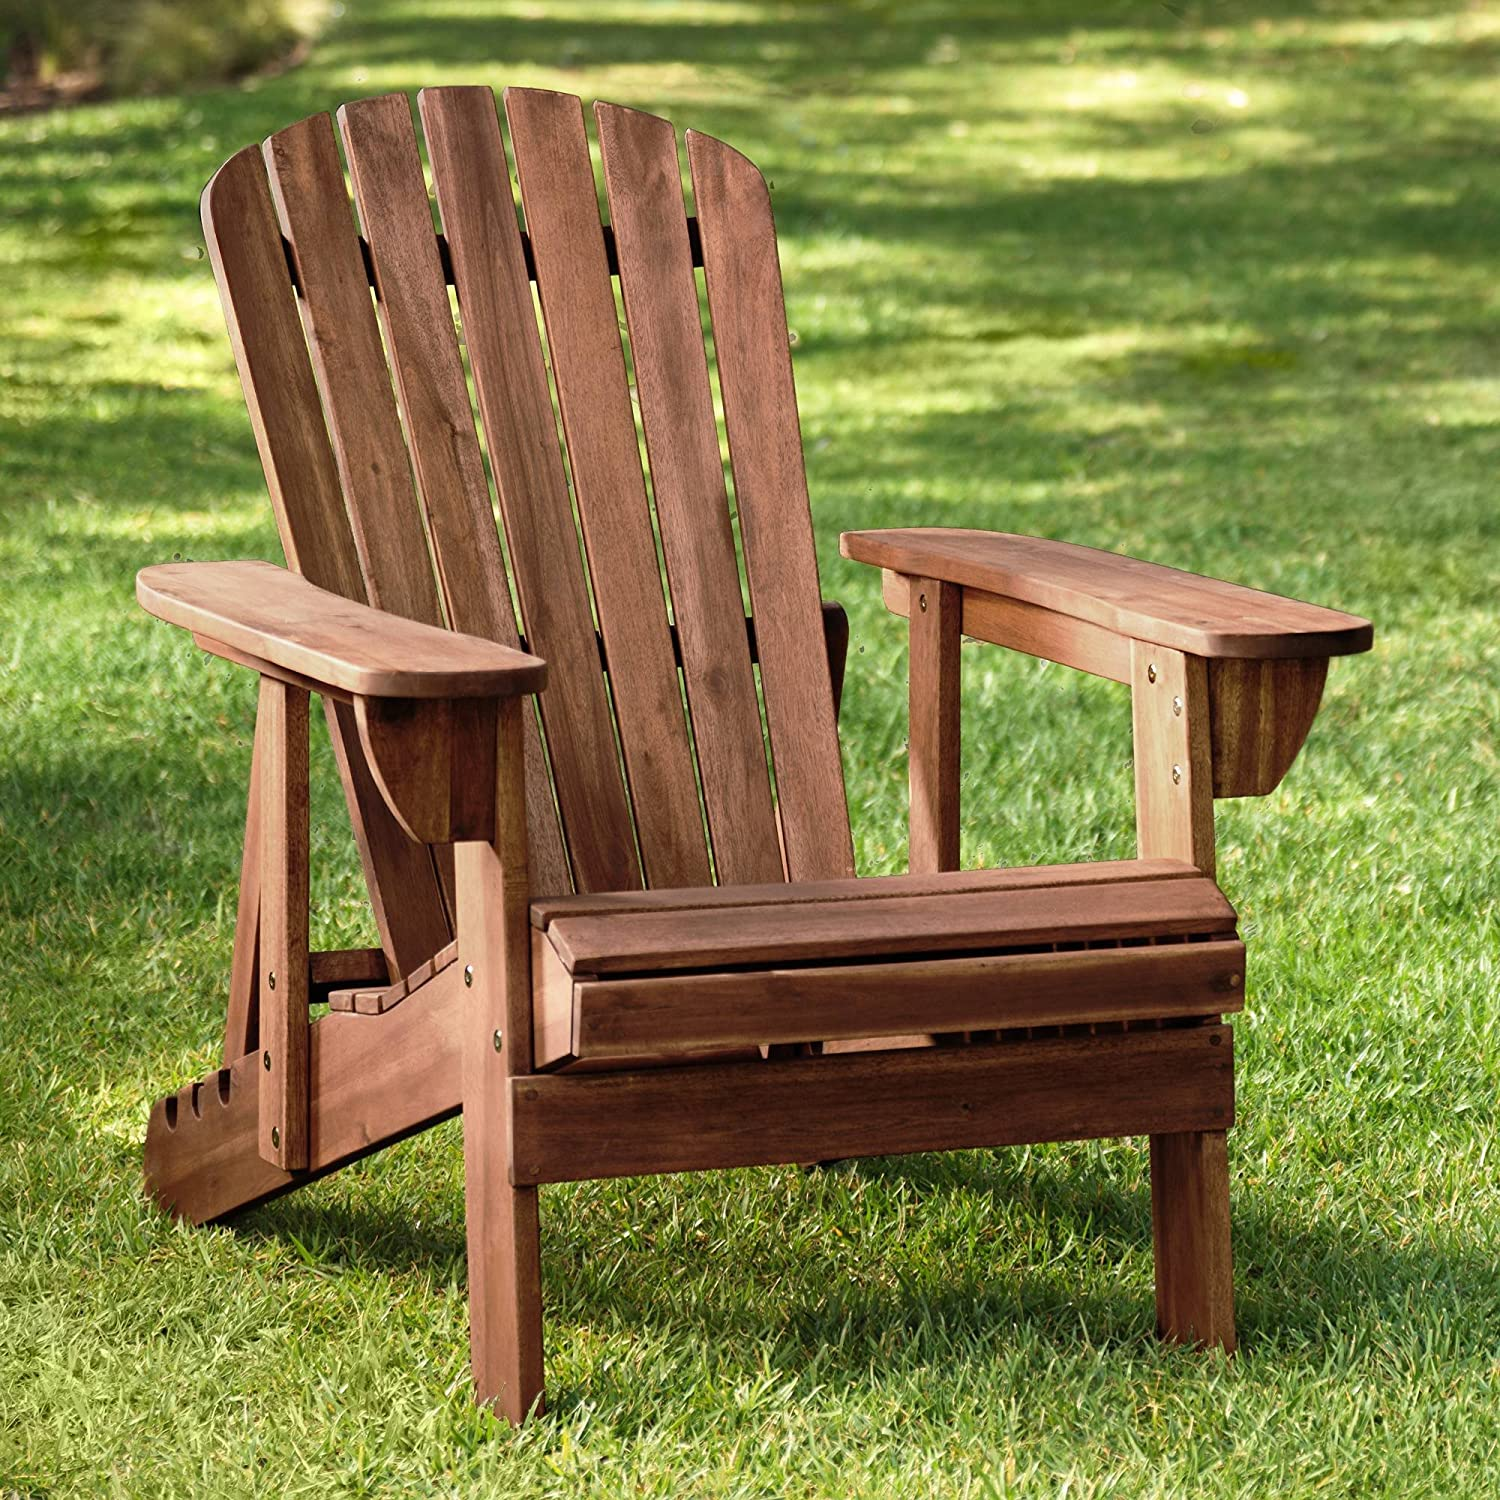 Teal Island Designs Fletcher Reclining Adirondack Dark Natural Chair